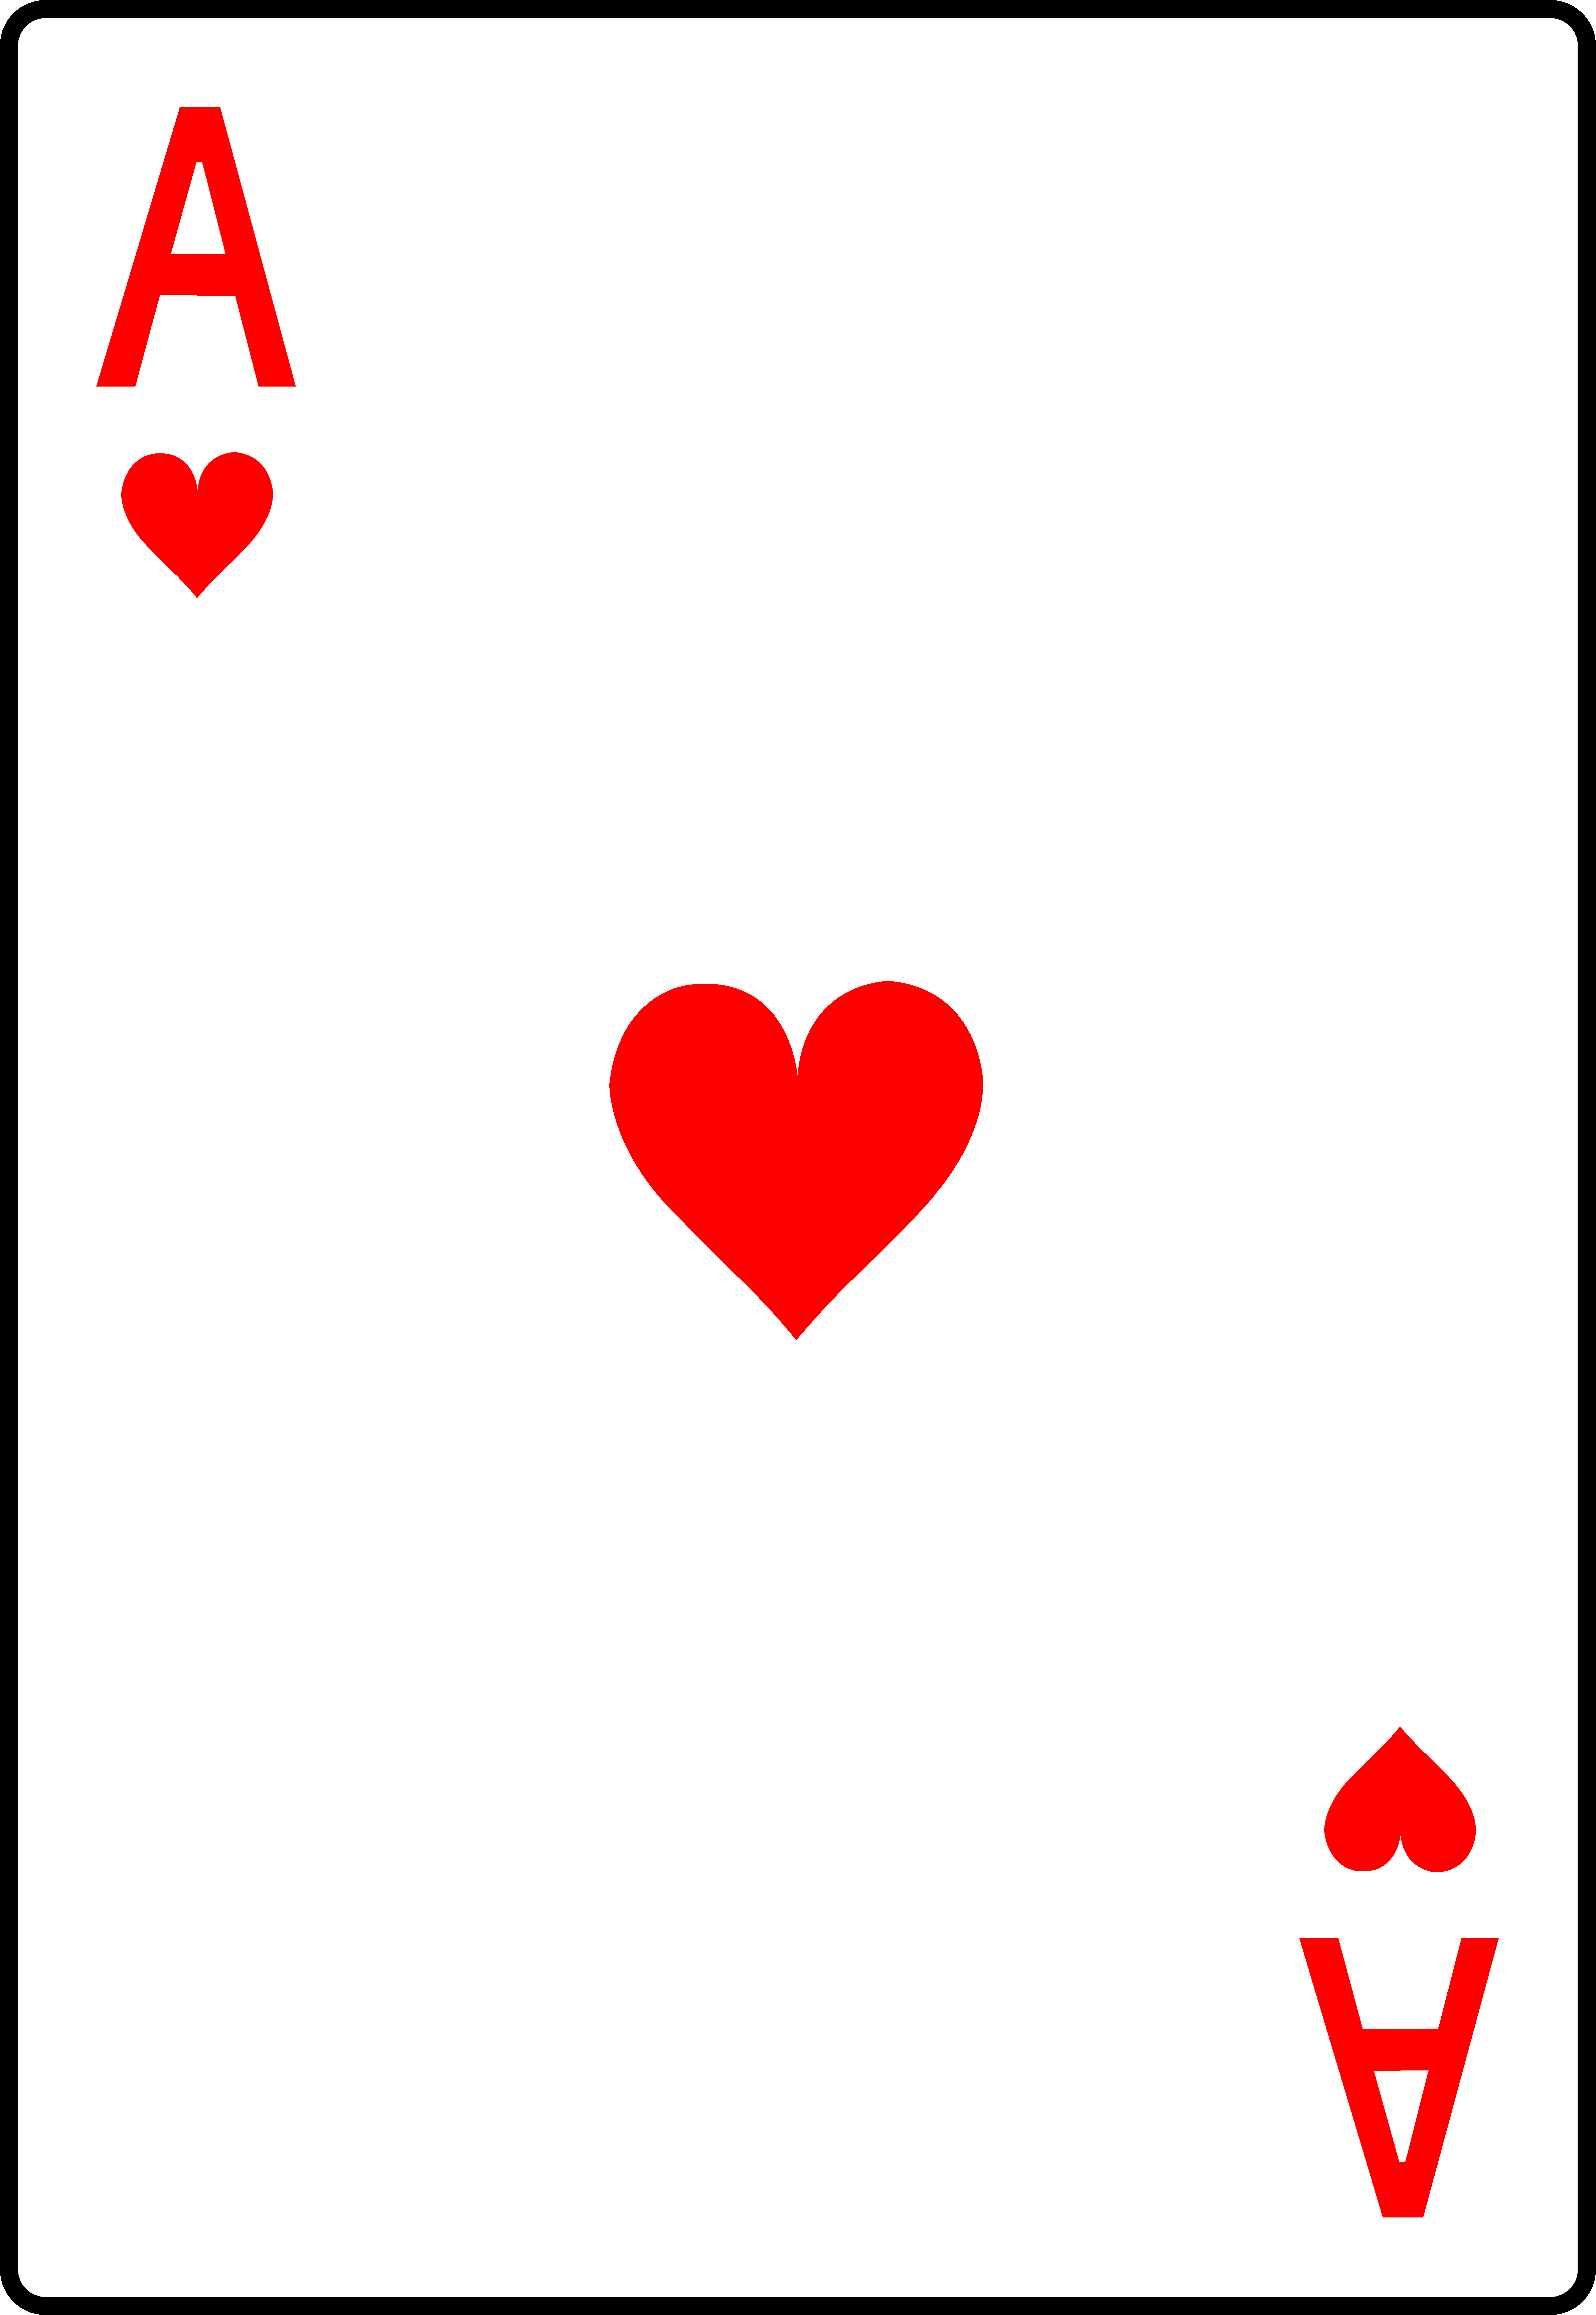 Ace of hearts clip art sweet clip art ace of hearts clip art biocorpaavc Image collections